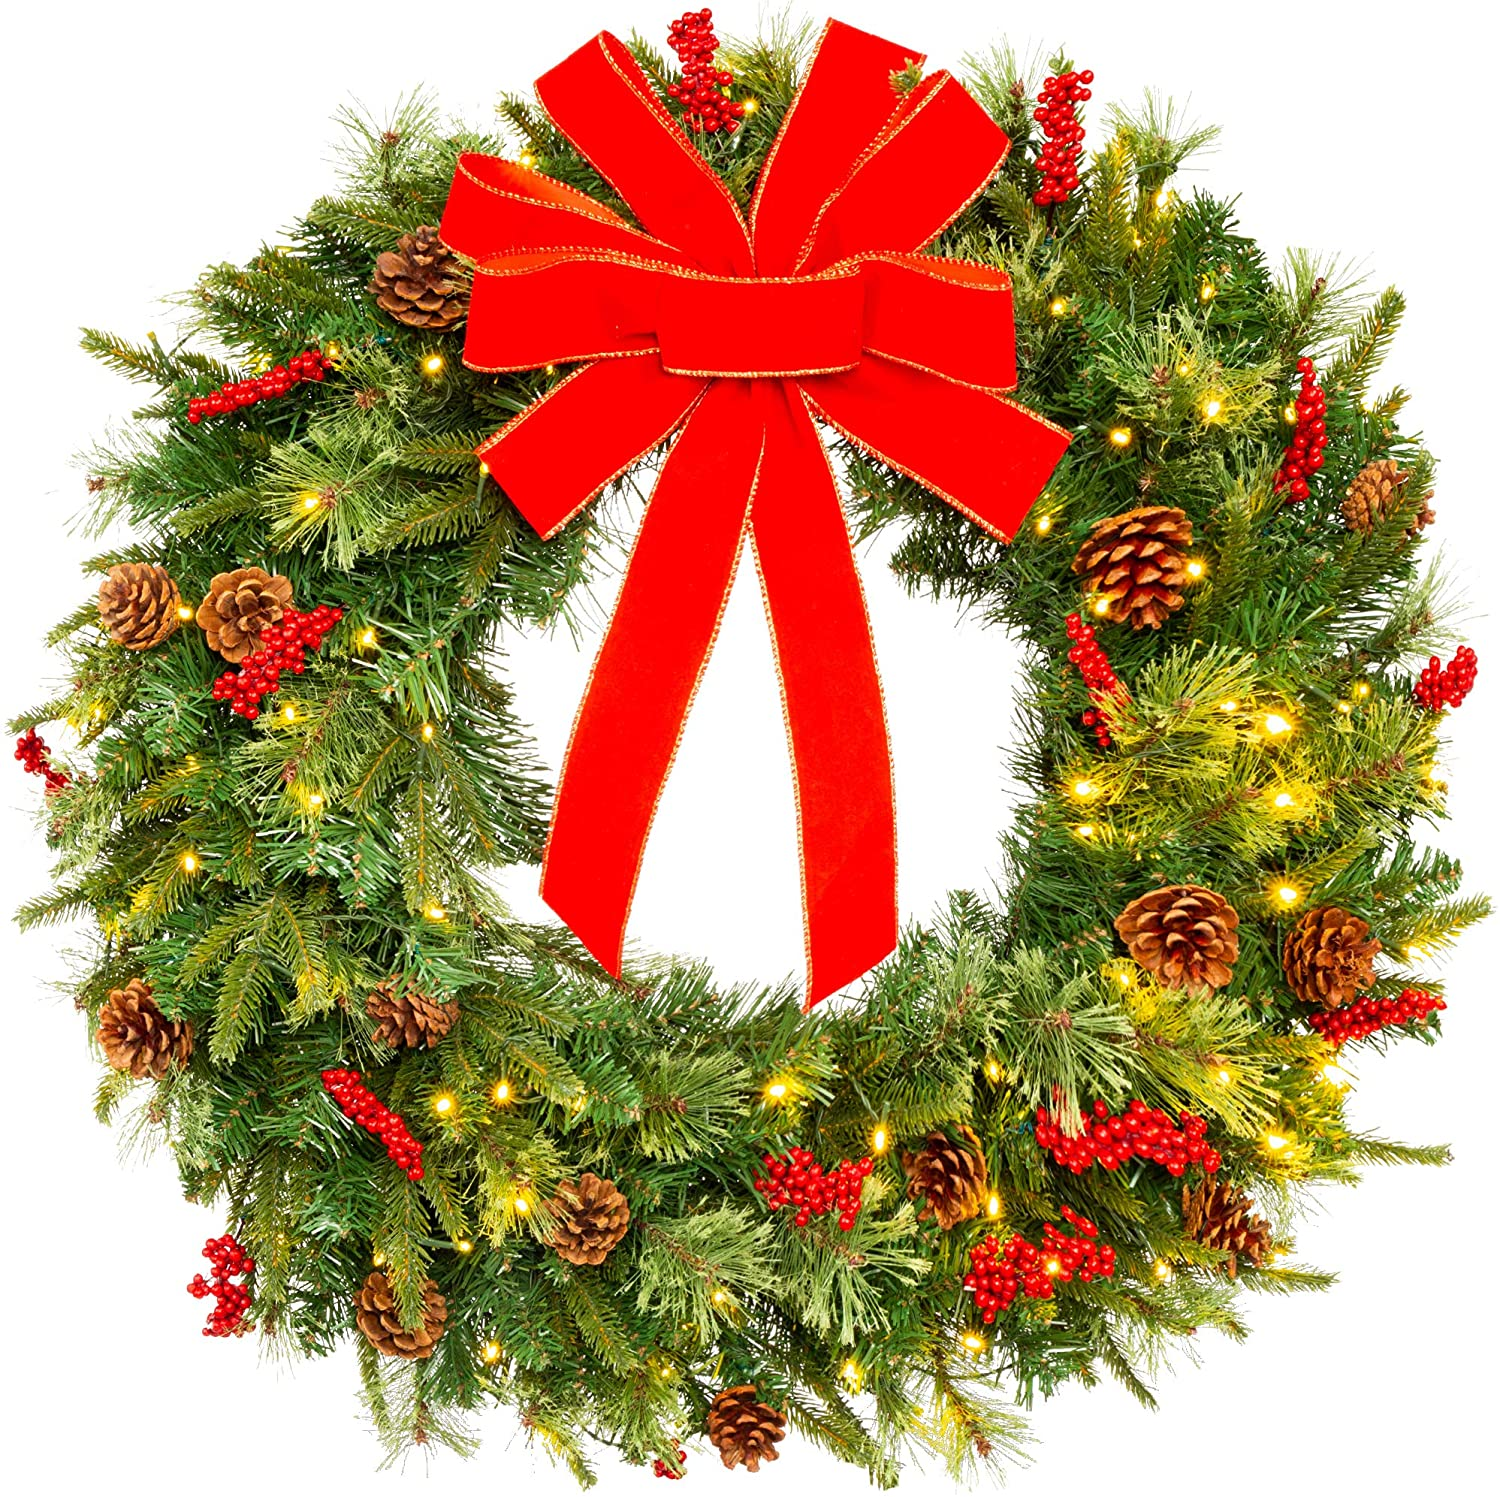 Best Choice Products 24in Pre-Lit Battery Powered Christmas Wreath Artificial Pre-Decorated Holiday Accent w/ 70 Lights, 96 PVC Tips, Ribbons, Pine Cones